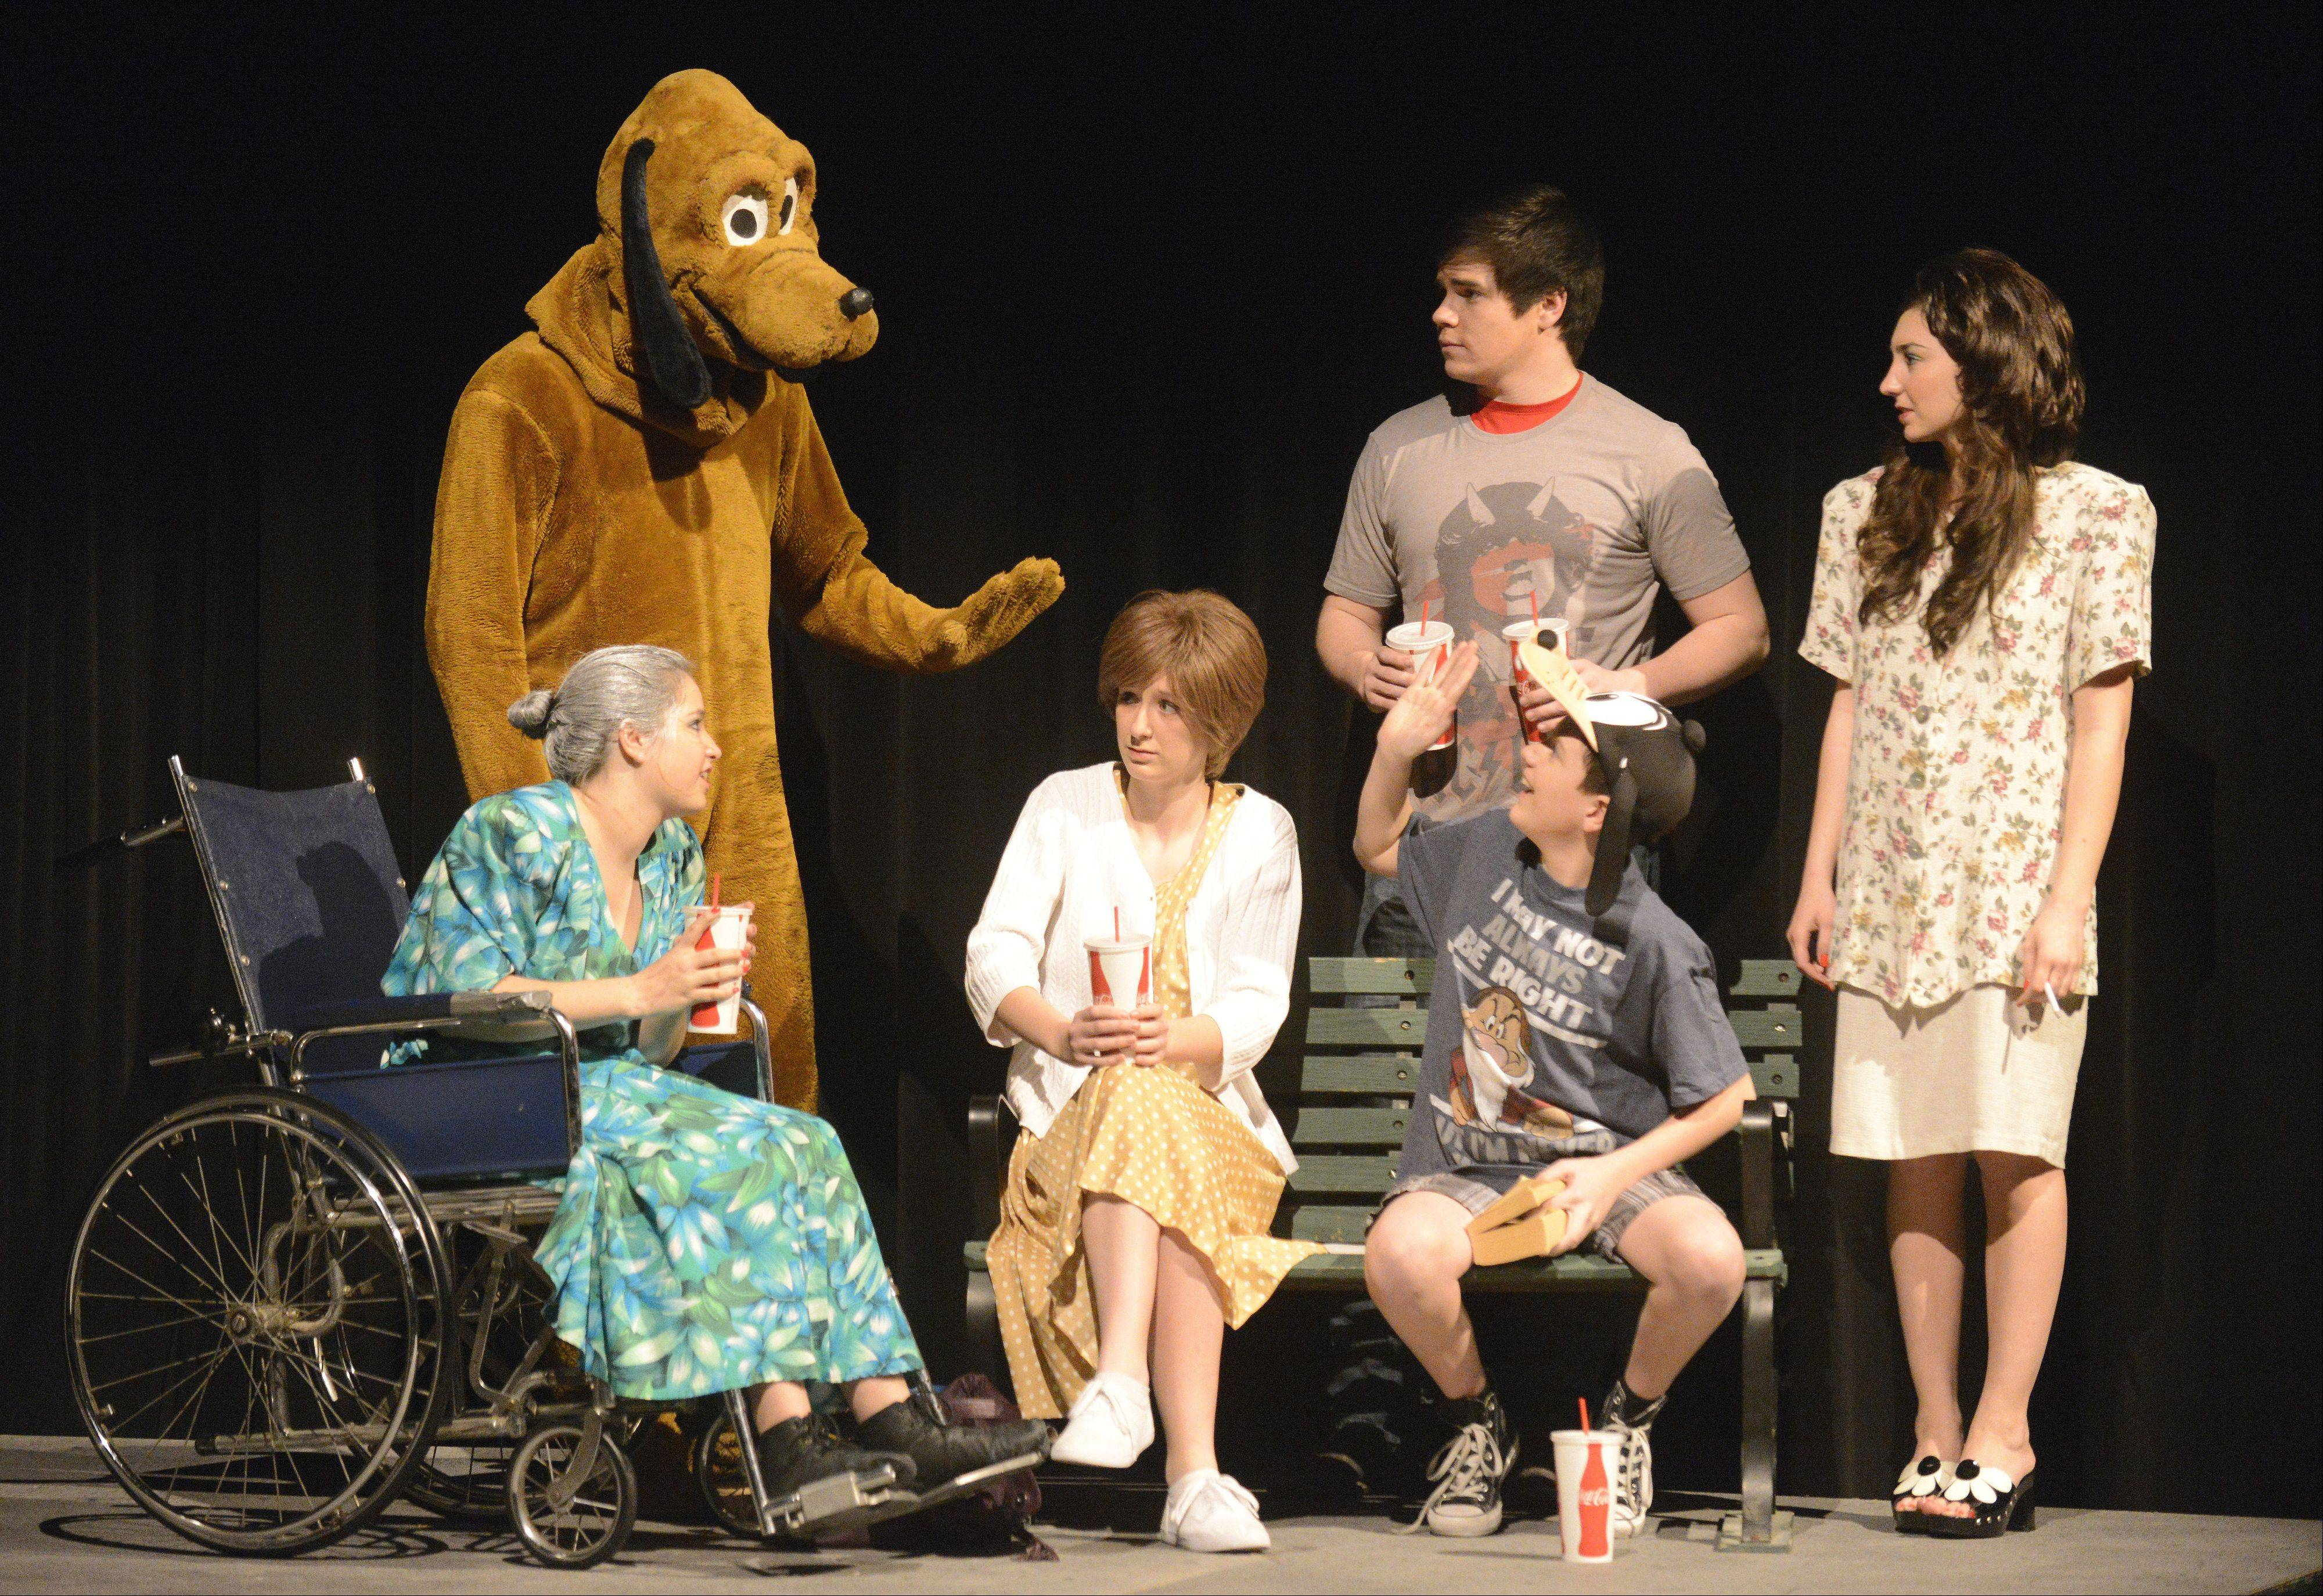 "Charlie waves at Pluto as the family visits Disneyland in Batavia High School's presentation of ""Marvin's Room."" From left are Claire Heronemus, 17, as Ruth; Mitch Wallfred, 18, as Pluto; Kelsey Skomer, 17 as Bessie; John Hohman, 14, as Charlie (seated); Jake Birkhaug, 16, as Hank; and Jordan Morgan, 16 as Lee."